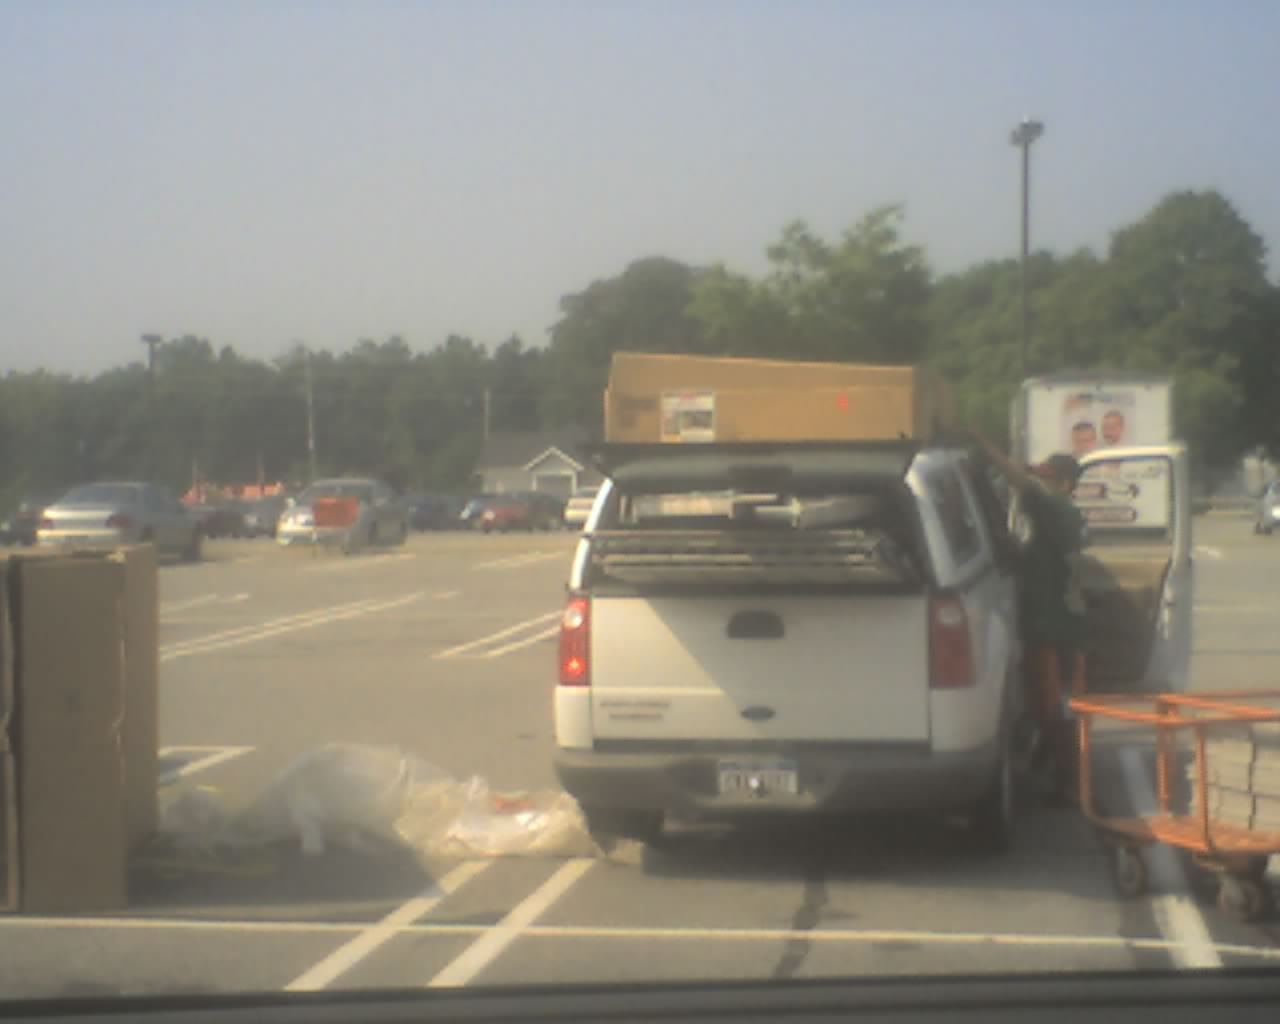 Funny home depot pictures